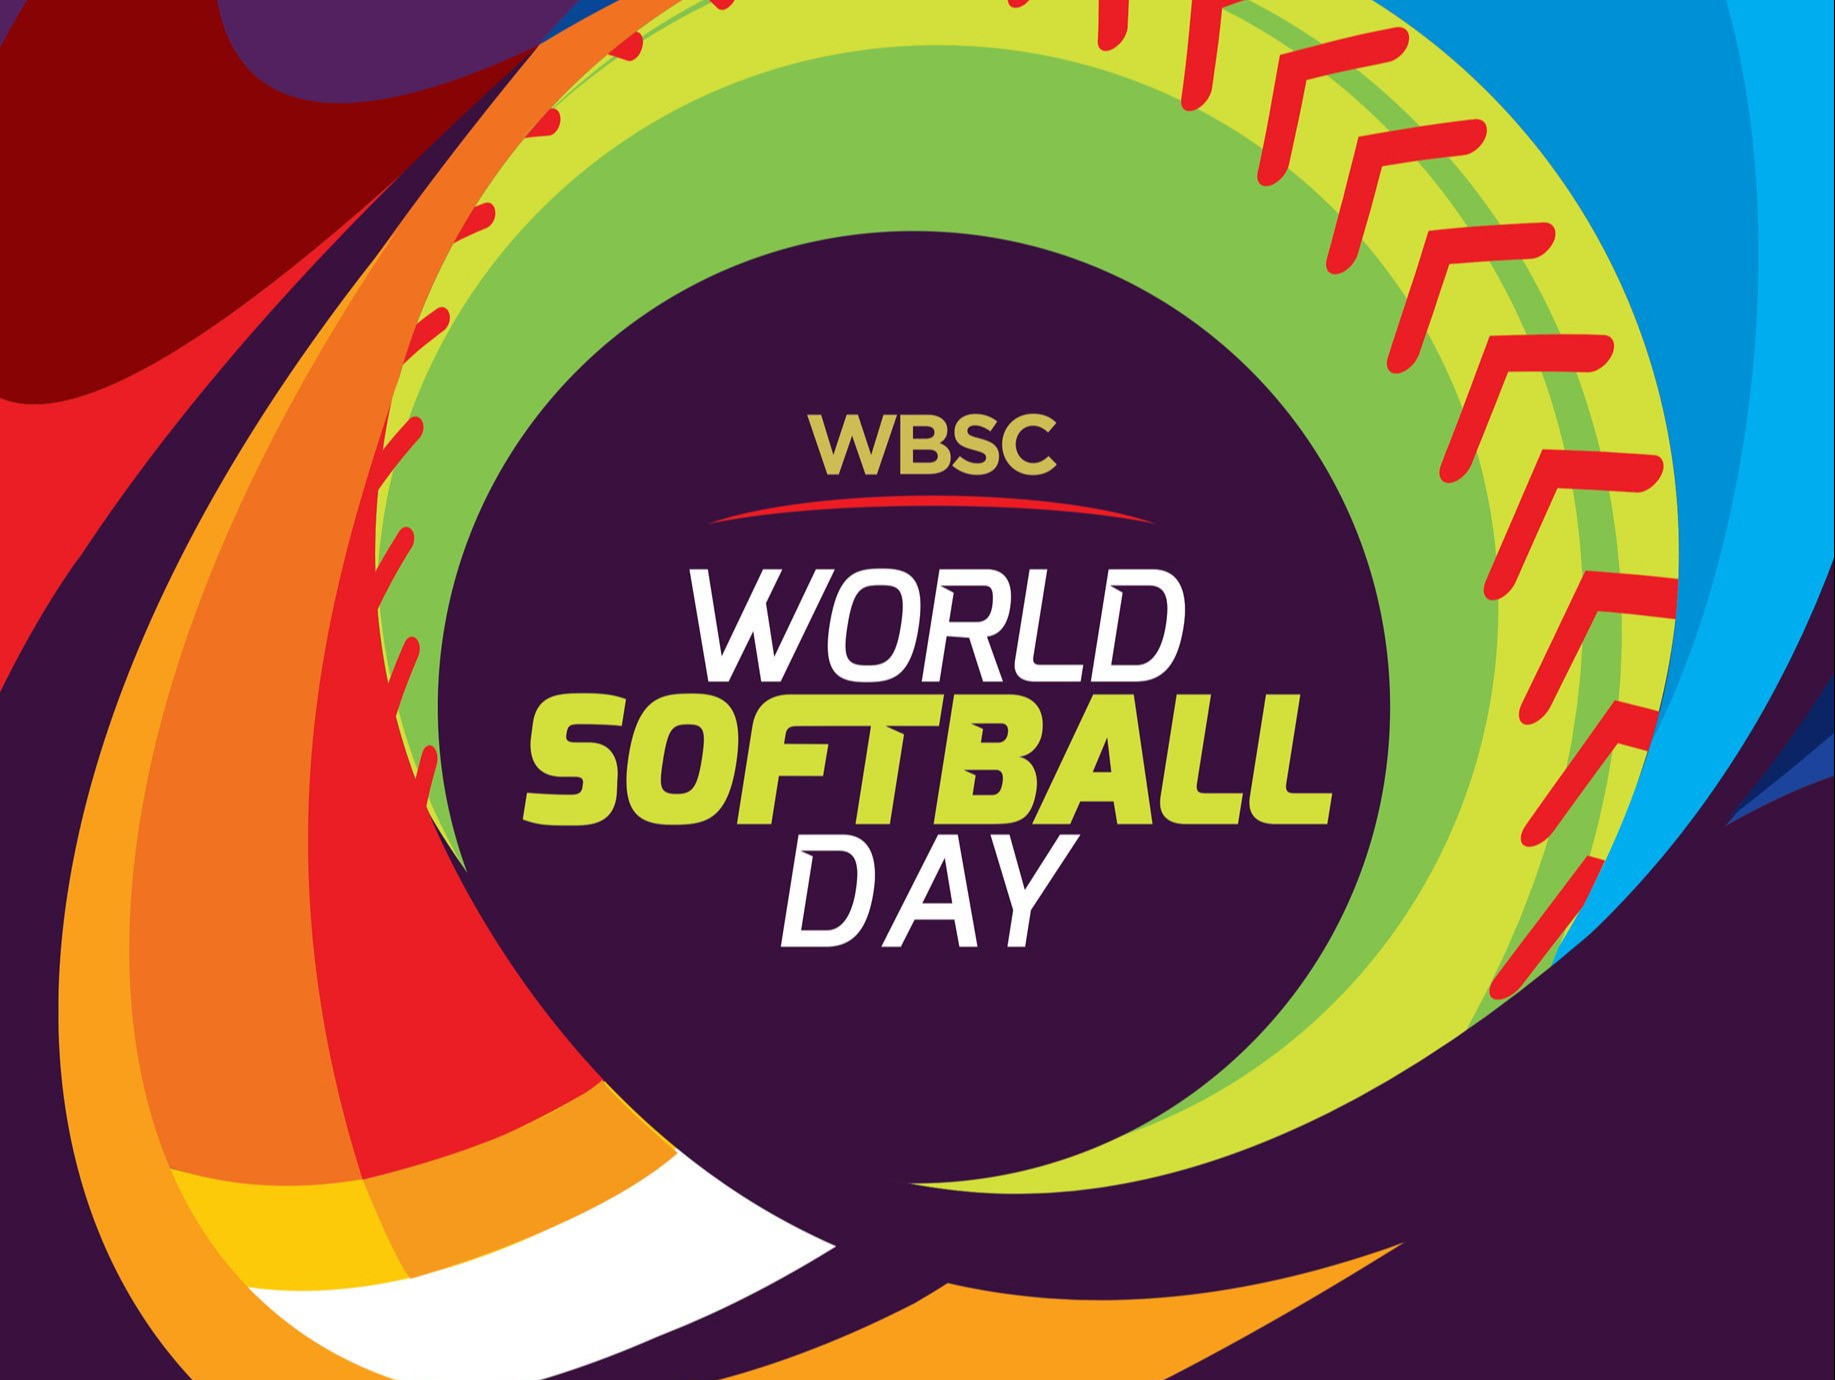 WBSC pays tribute to the late Don Porter on World Softball Day